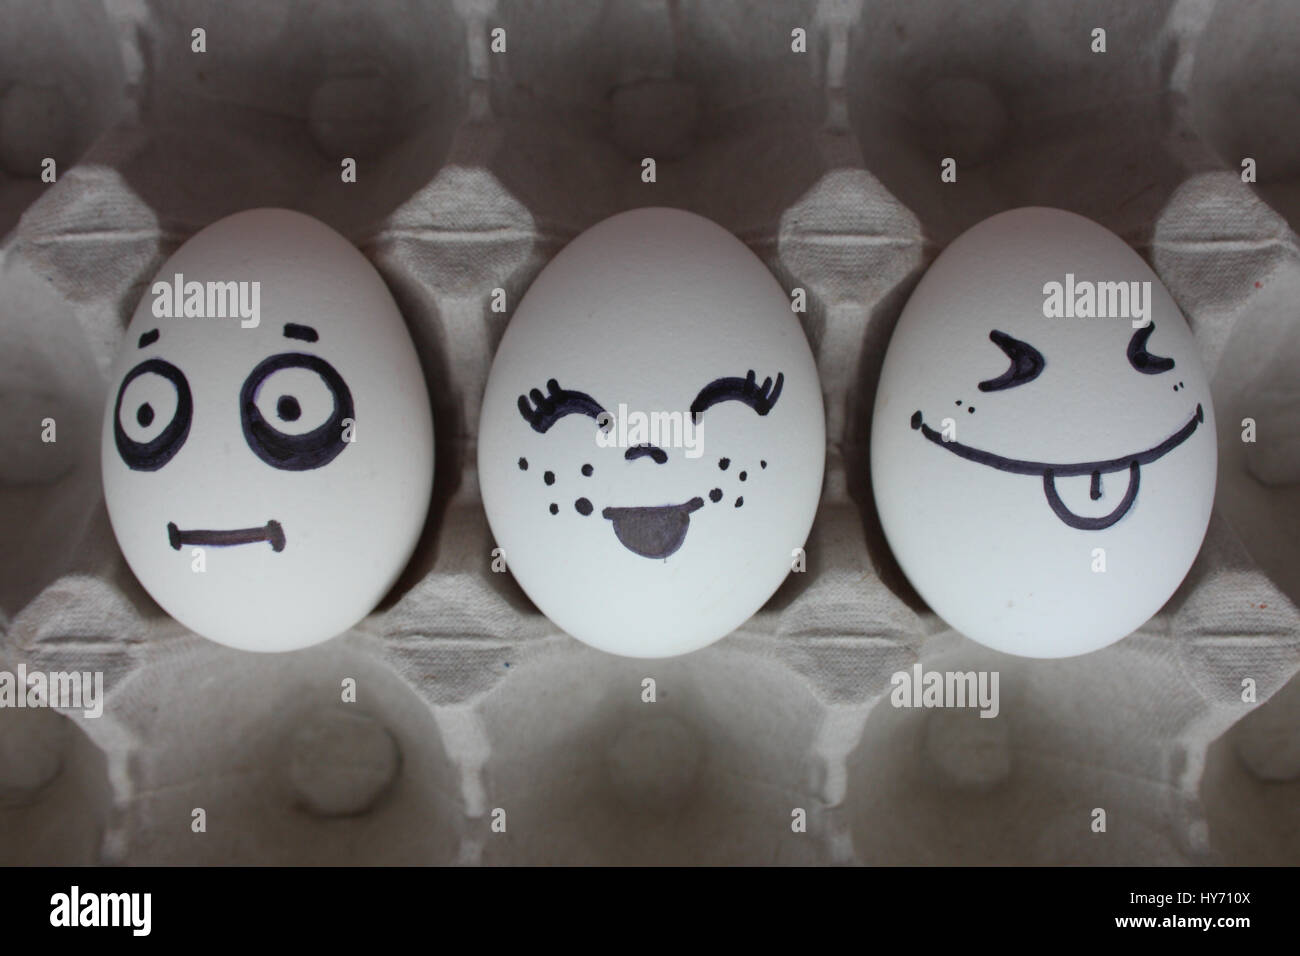 Eggs with faces photo for your design. in the box. Funny and cute. Three eggs love triangle - Stock Image